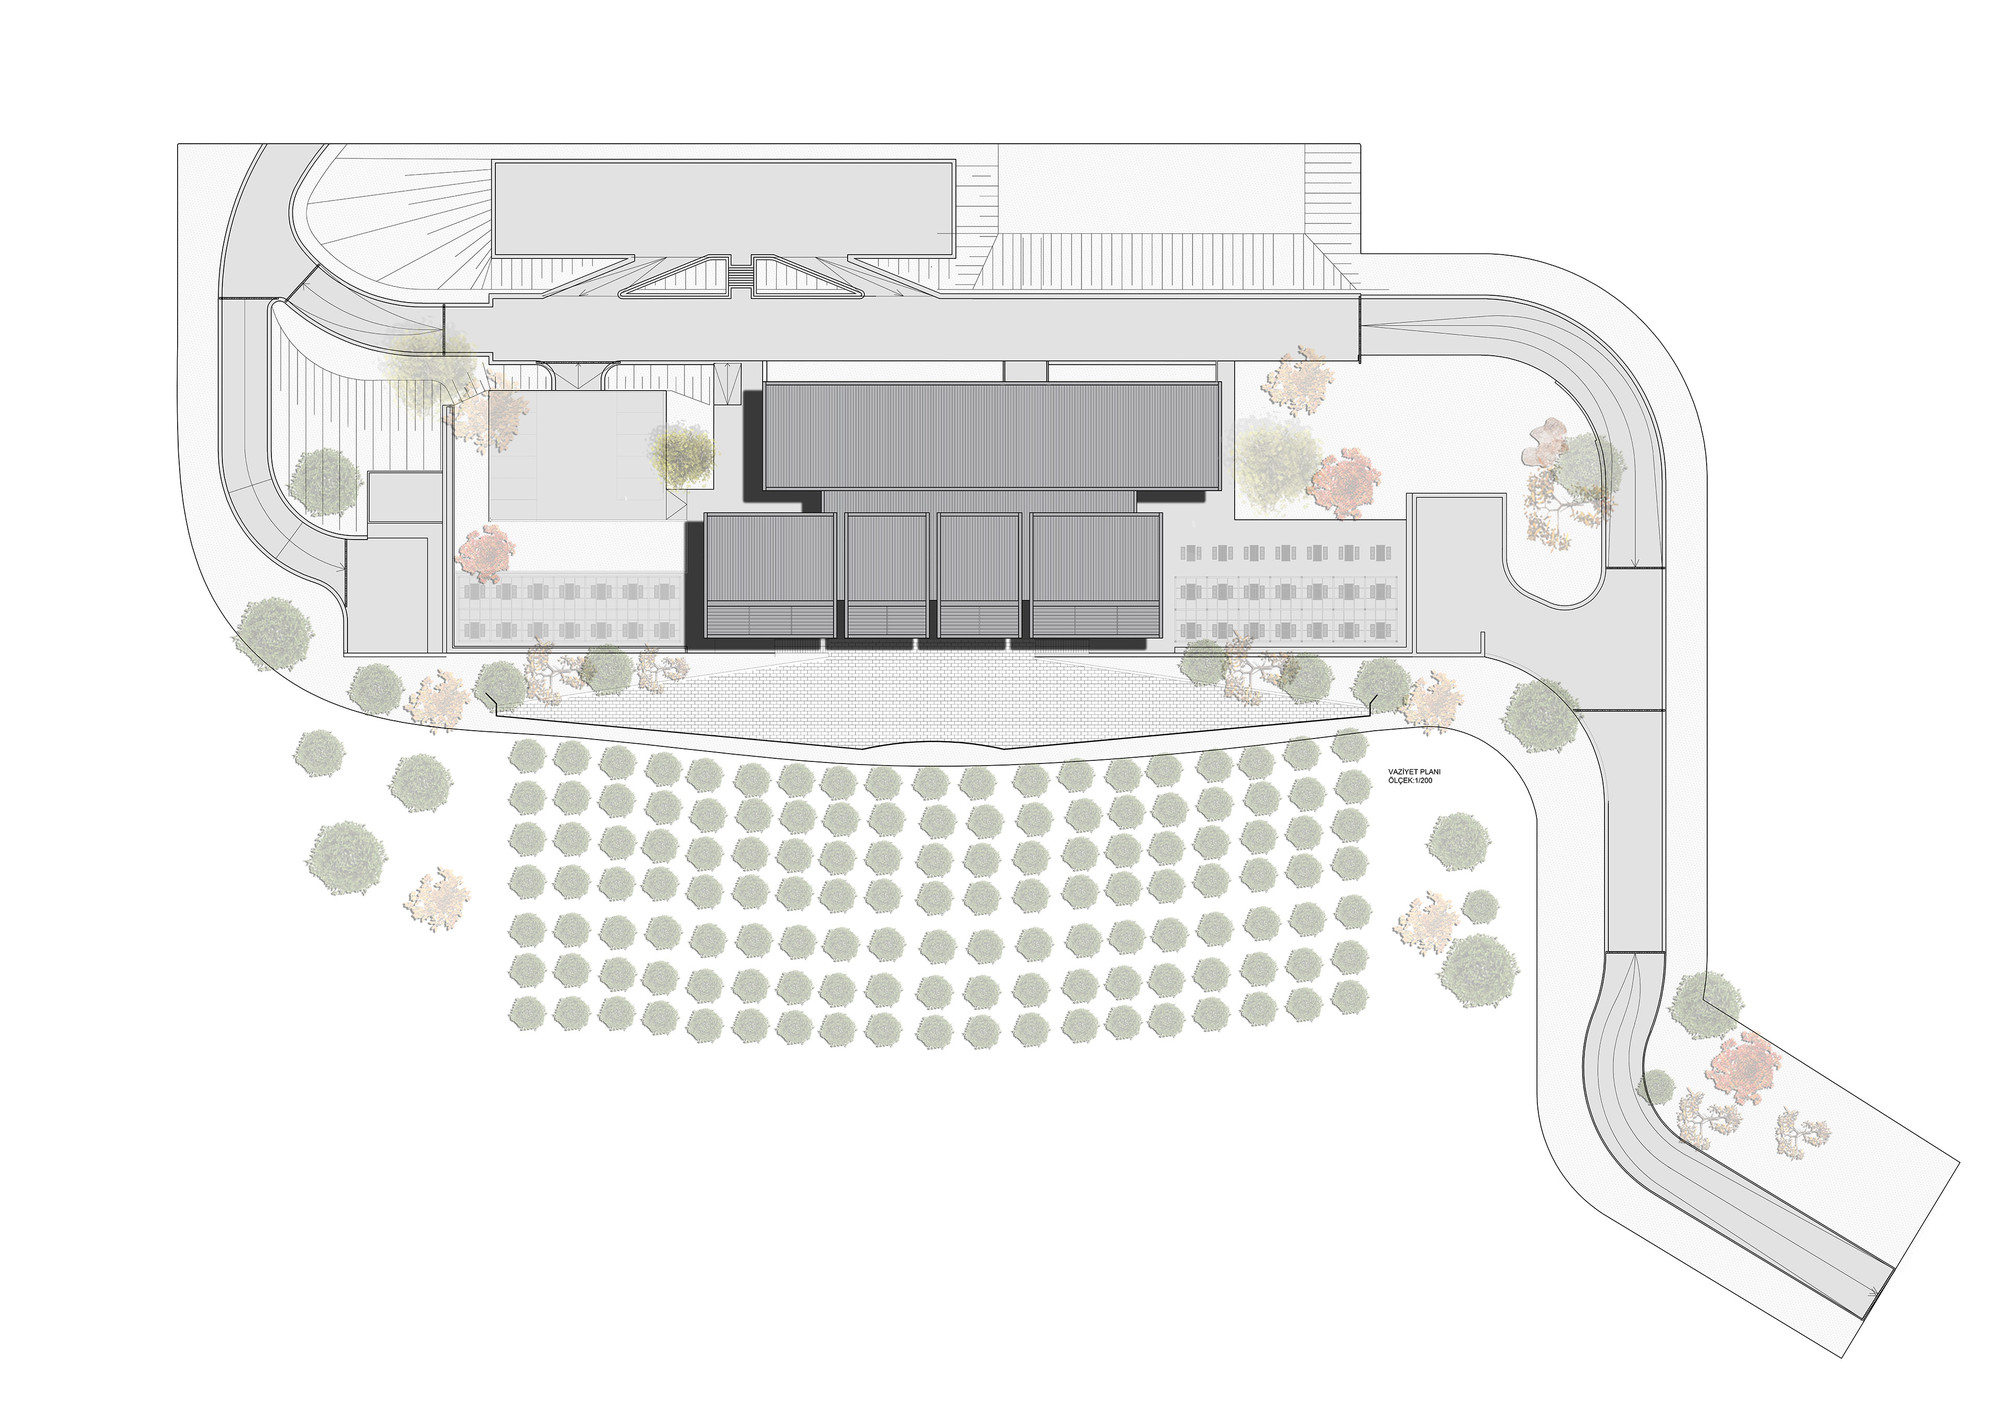 Gallery of la winery kreatif architects 22 for Winery floor plans by architects